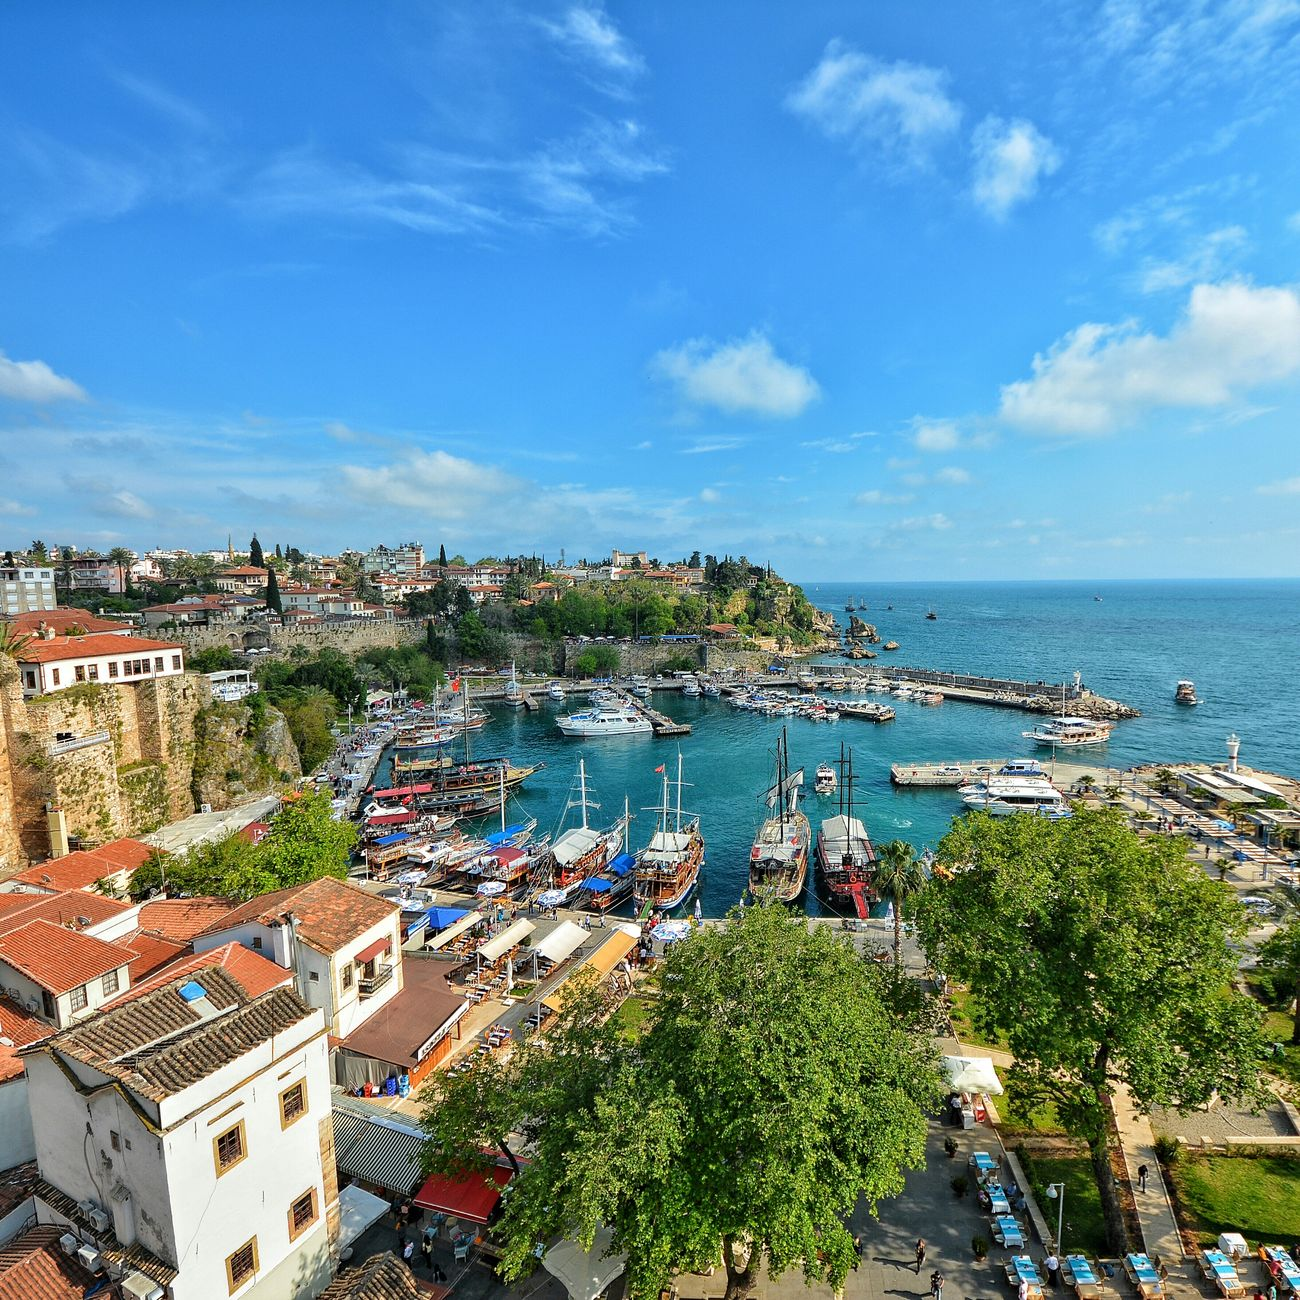 Antalya Antalya Turkey Antalyadayasam Antalya♥ Kaleiçi Antalya Turkey Taking Photos Check This Out Hanging Out Enjoying Life Enjoying The View